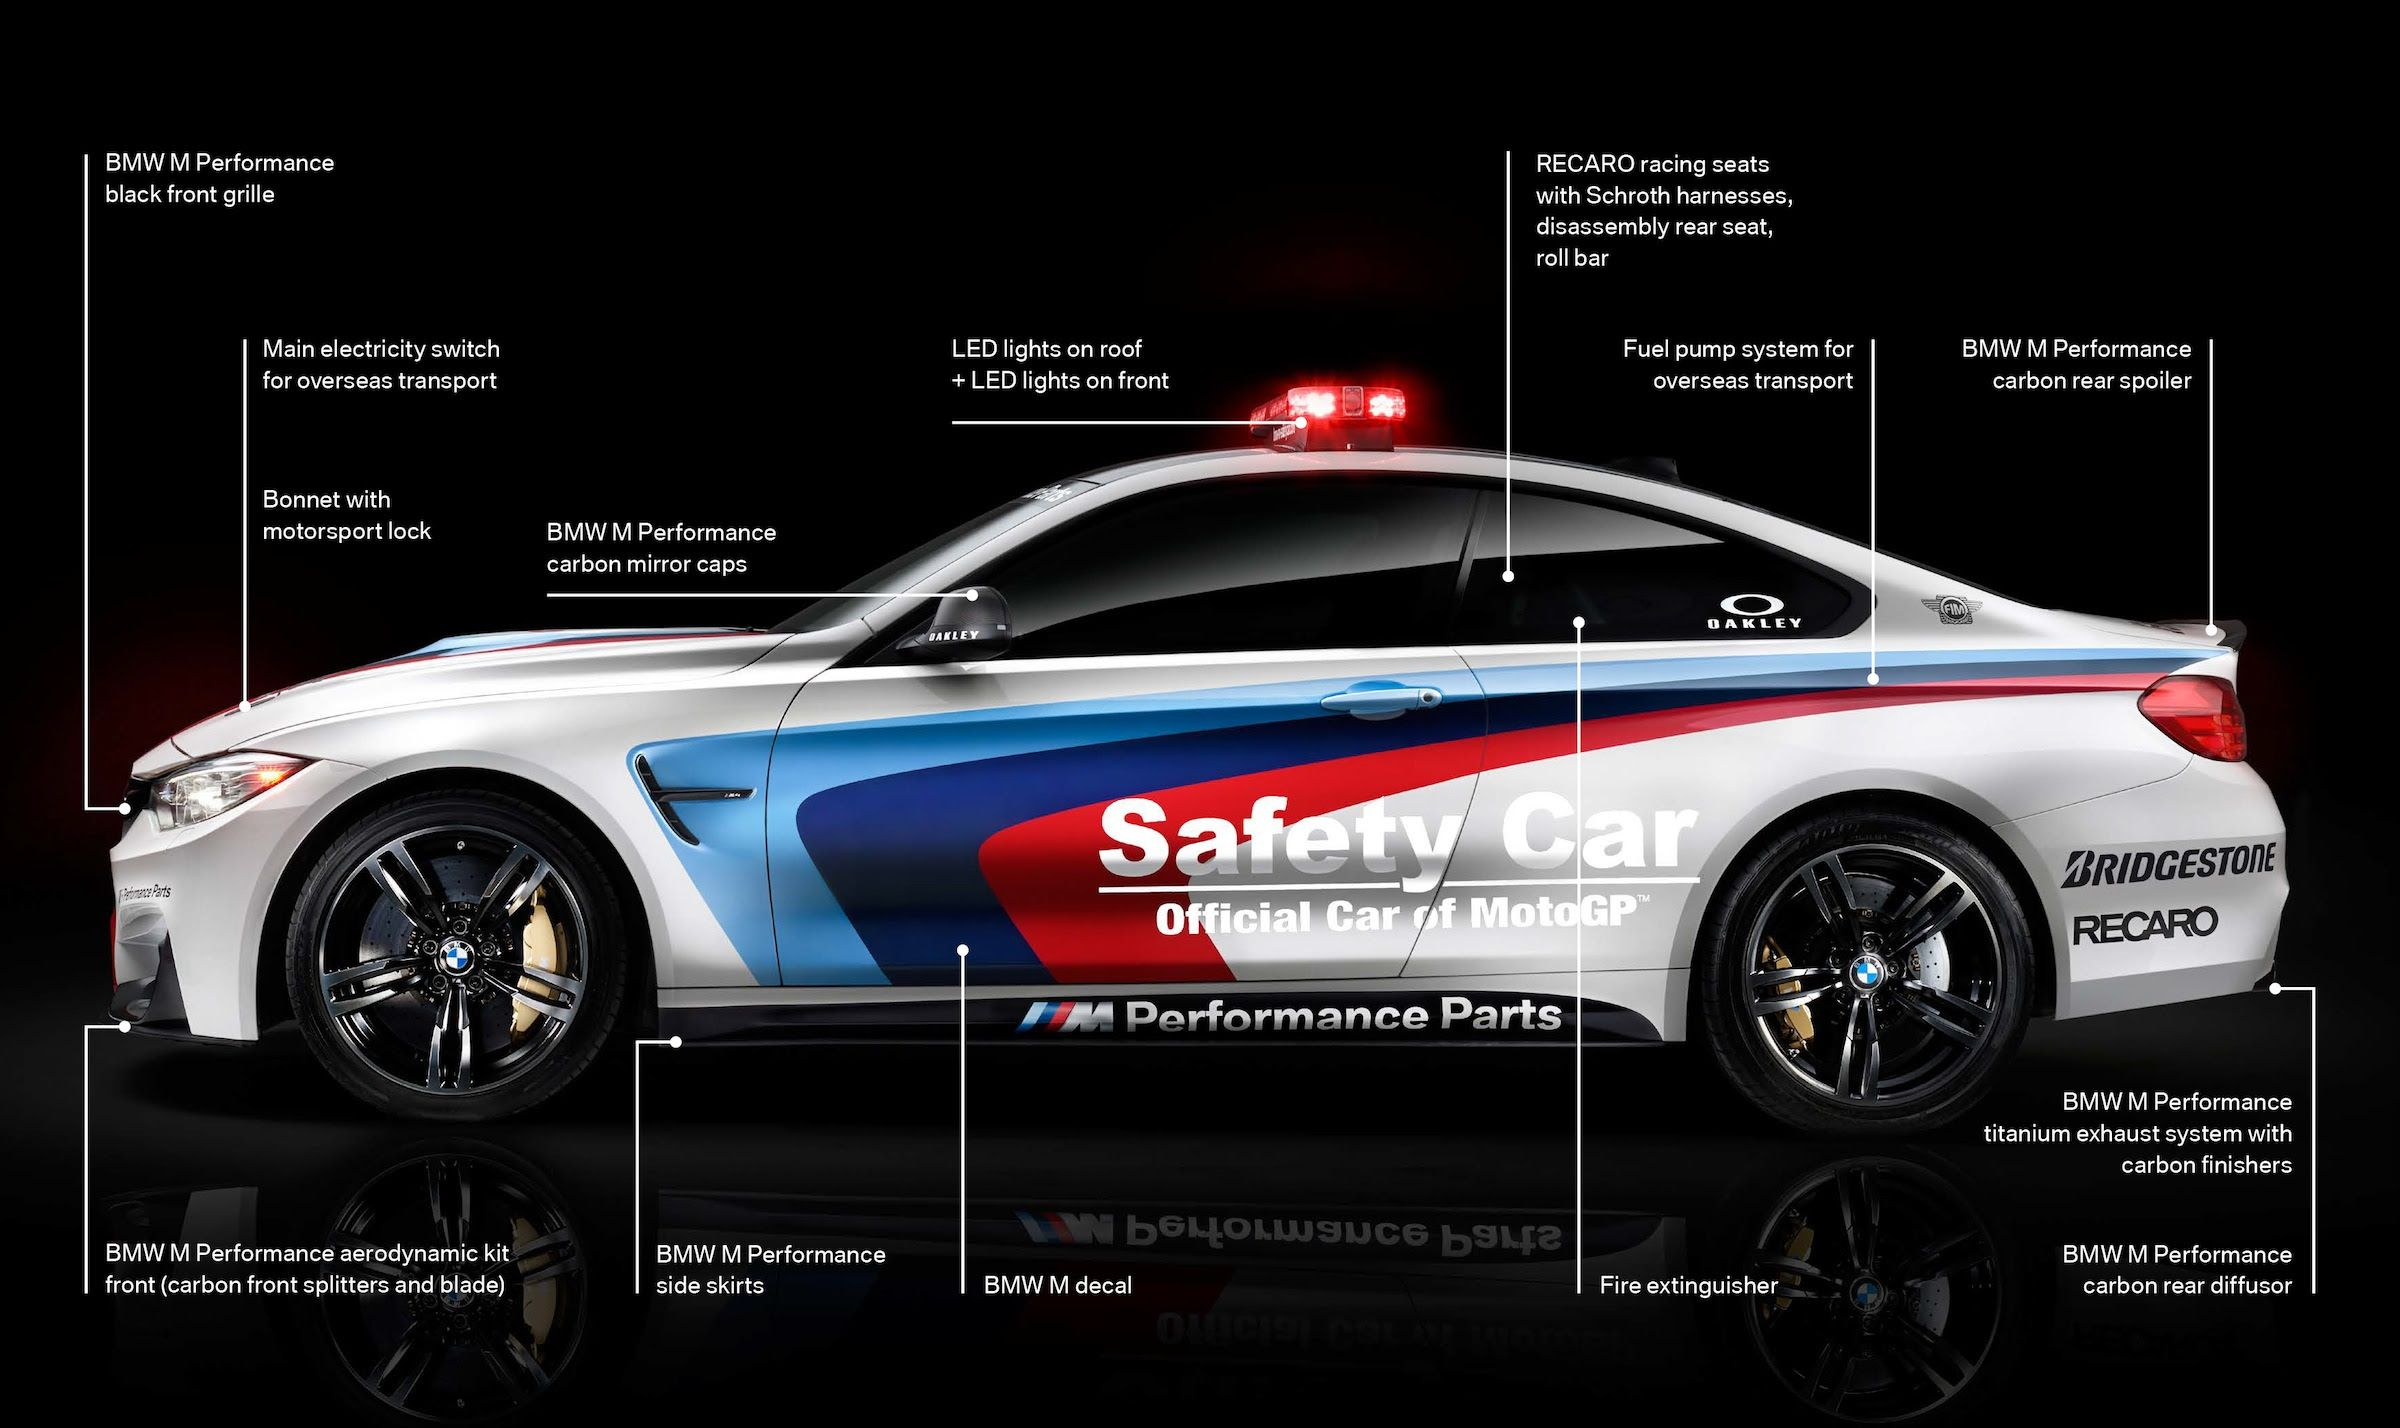 Bmw s motogp m4 safety car with m performance parts http www